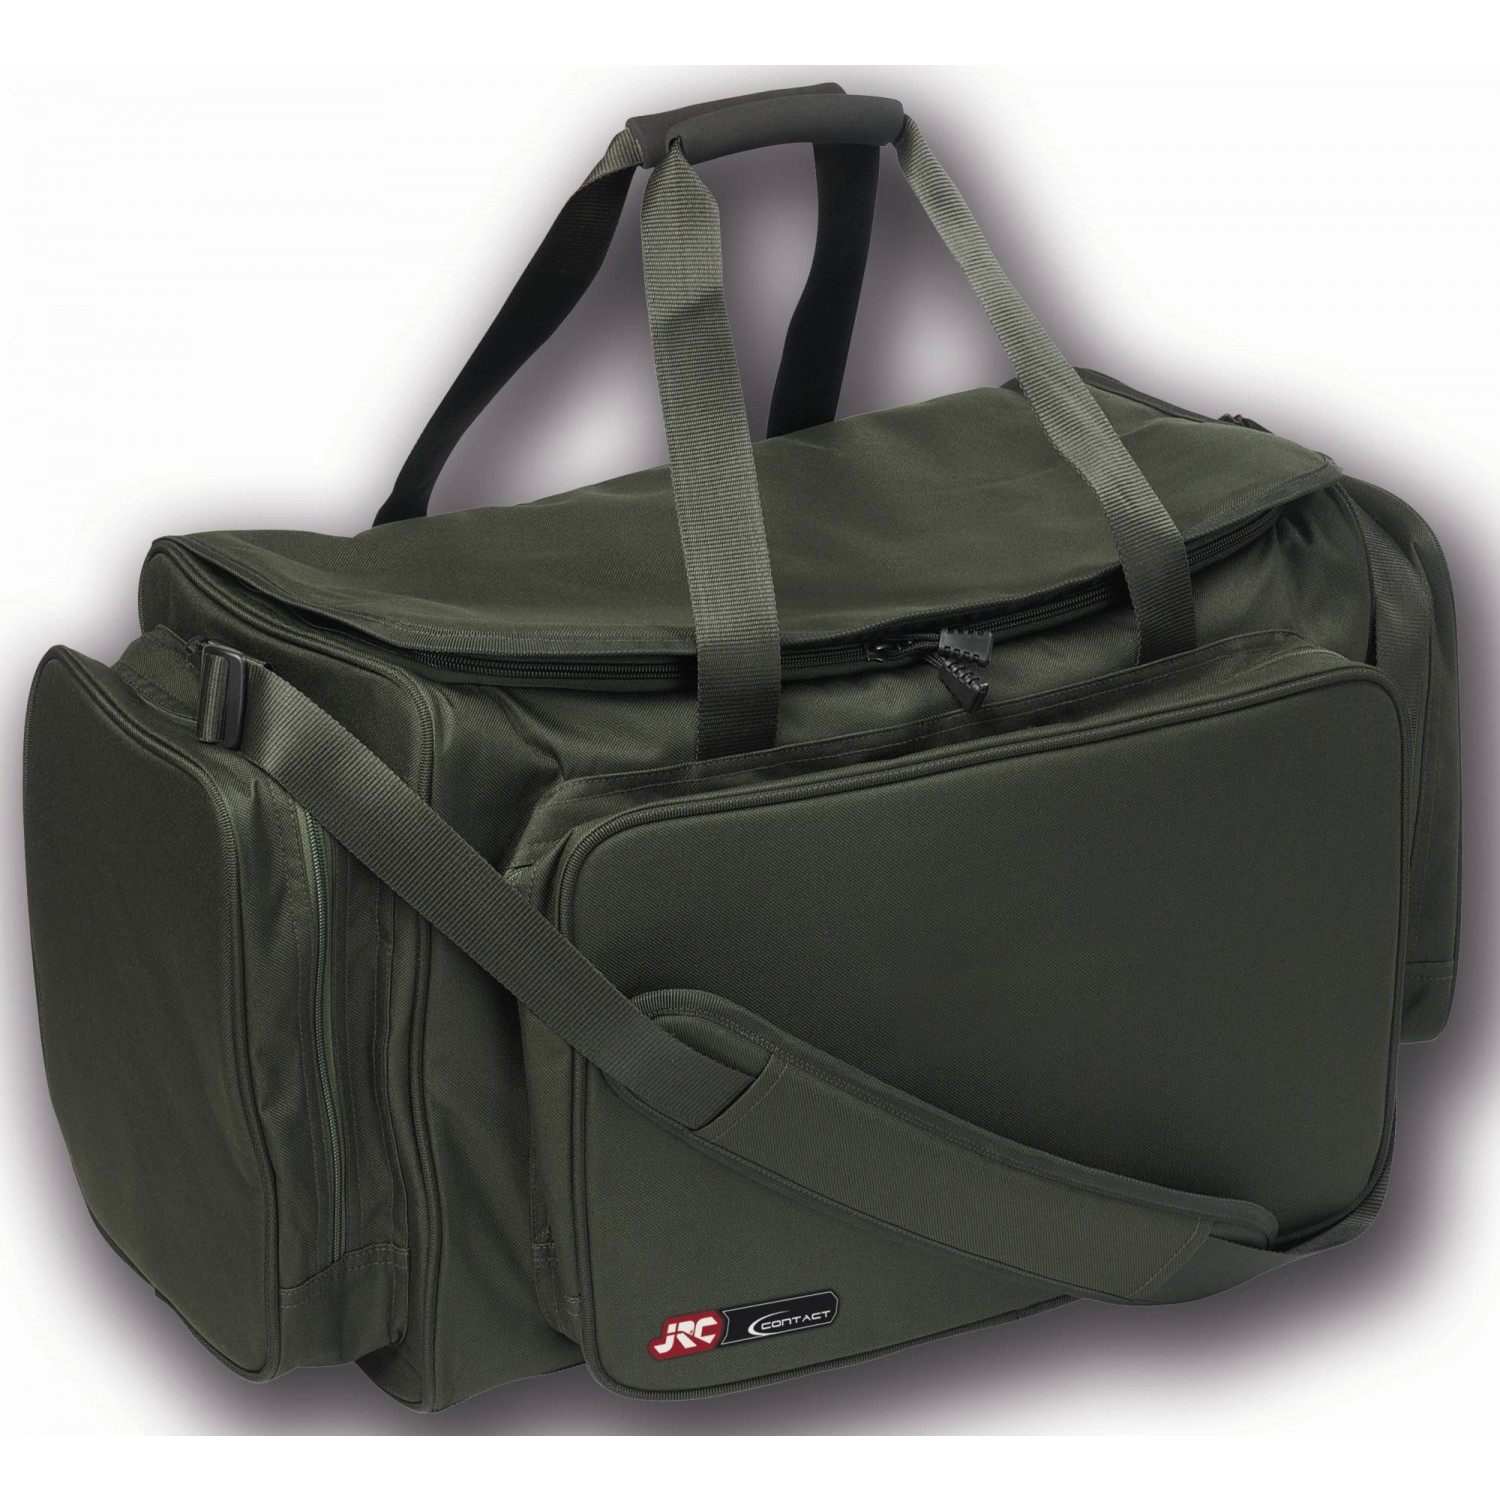 JRC Contact Carryall